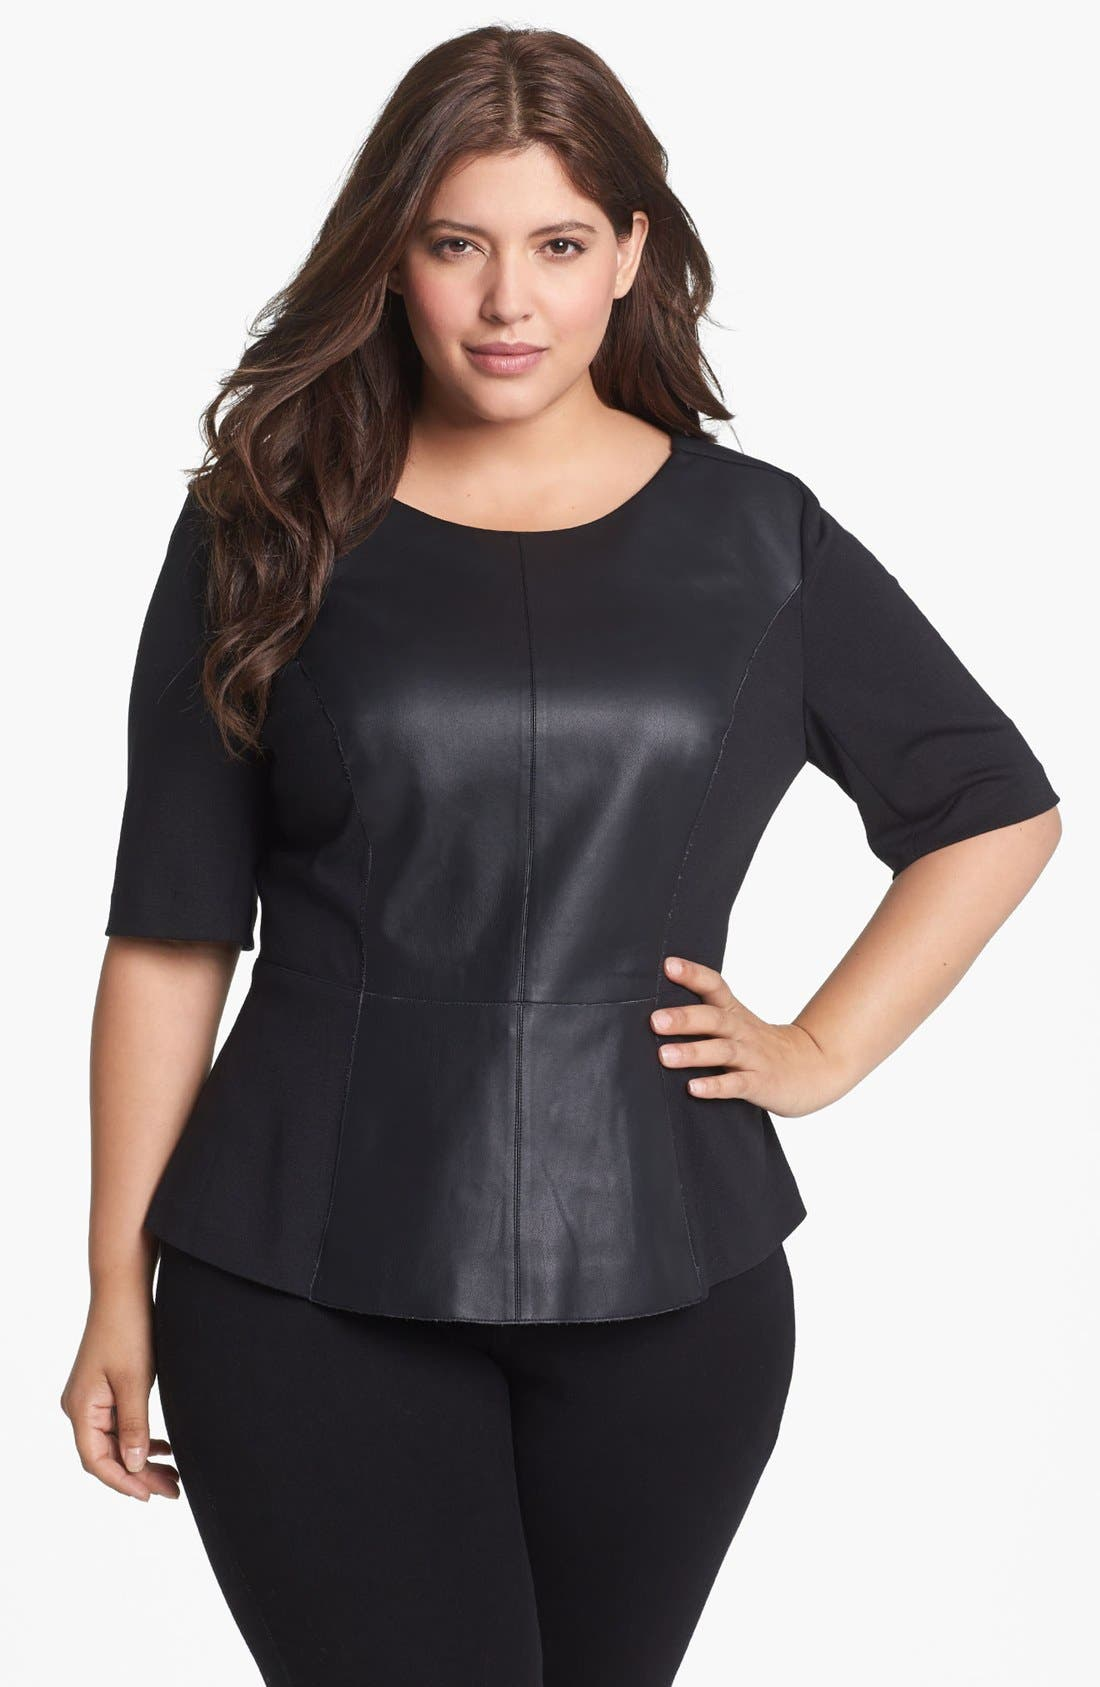 Alternate Image 1 Selected - Sejour Faux Leather Front Peplum Top (Plus Size)